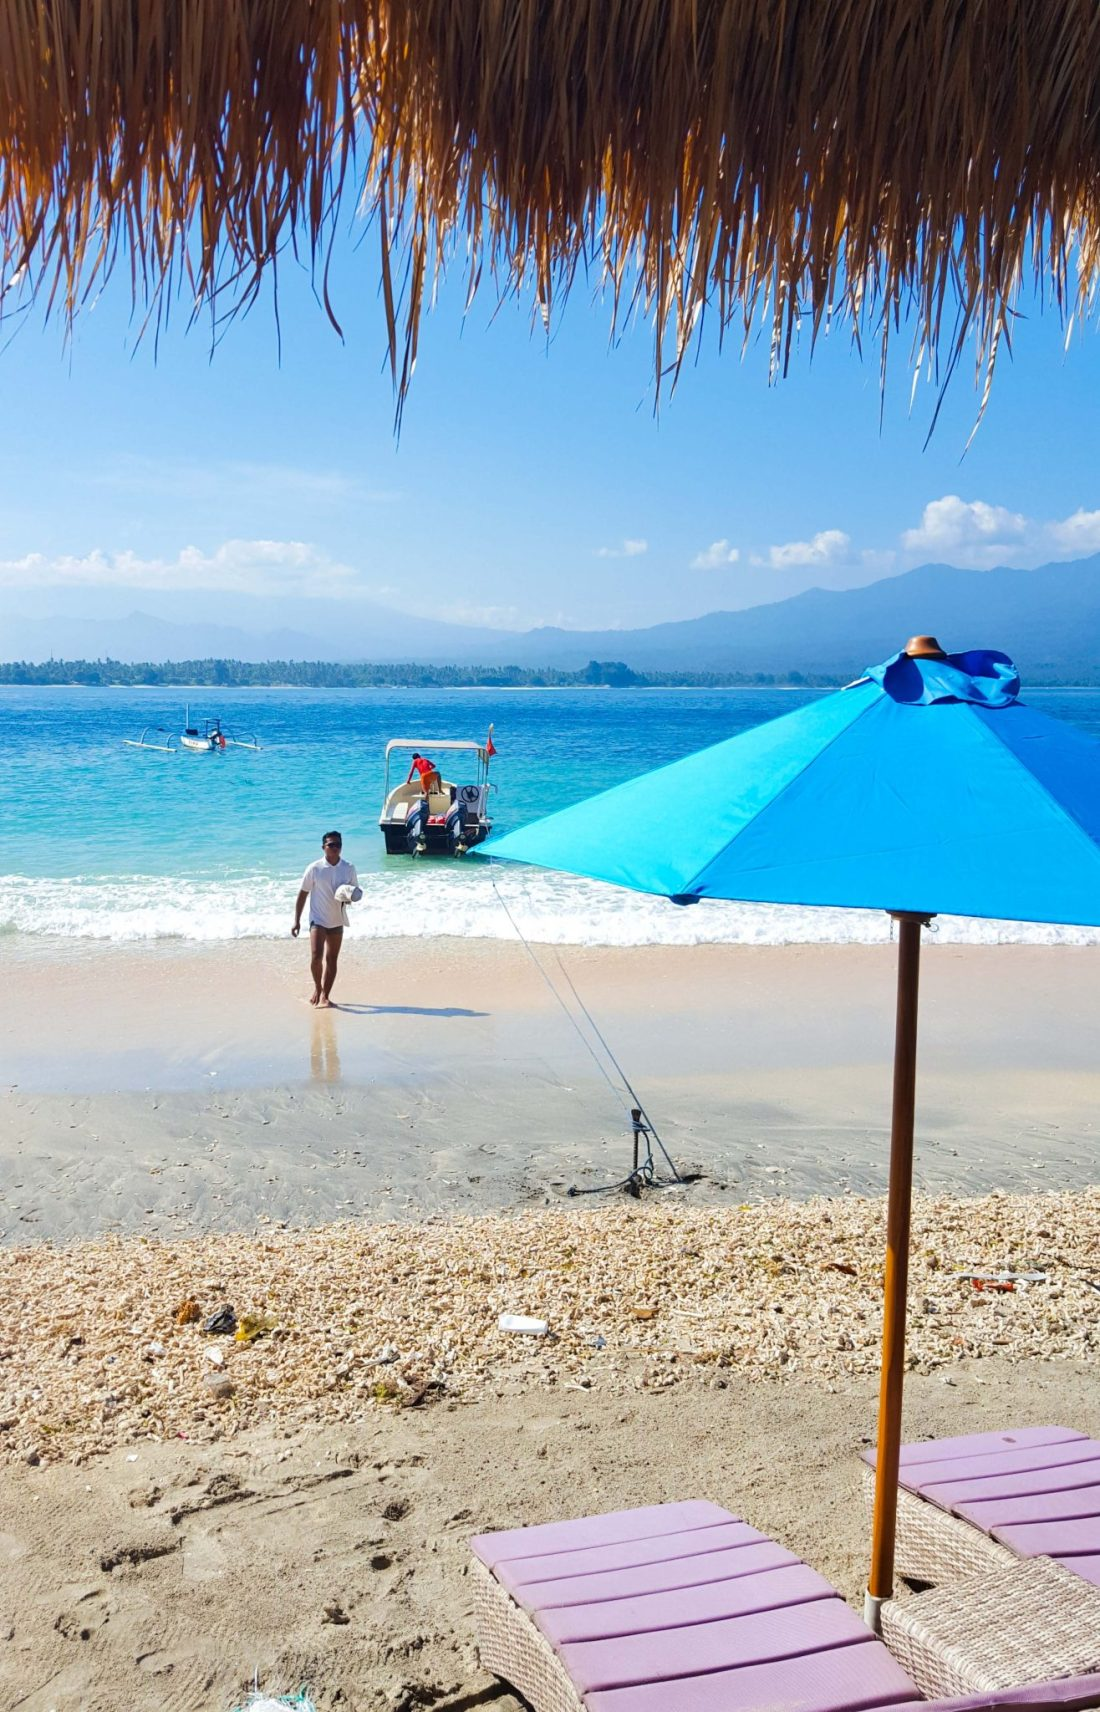 Things to do in Gili Islands